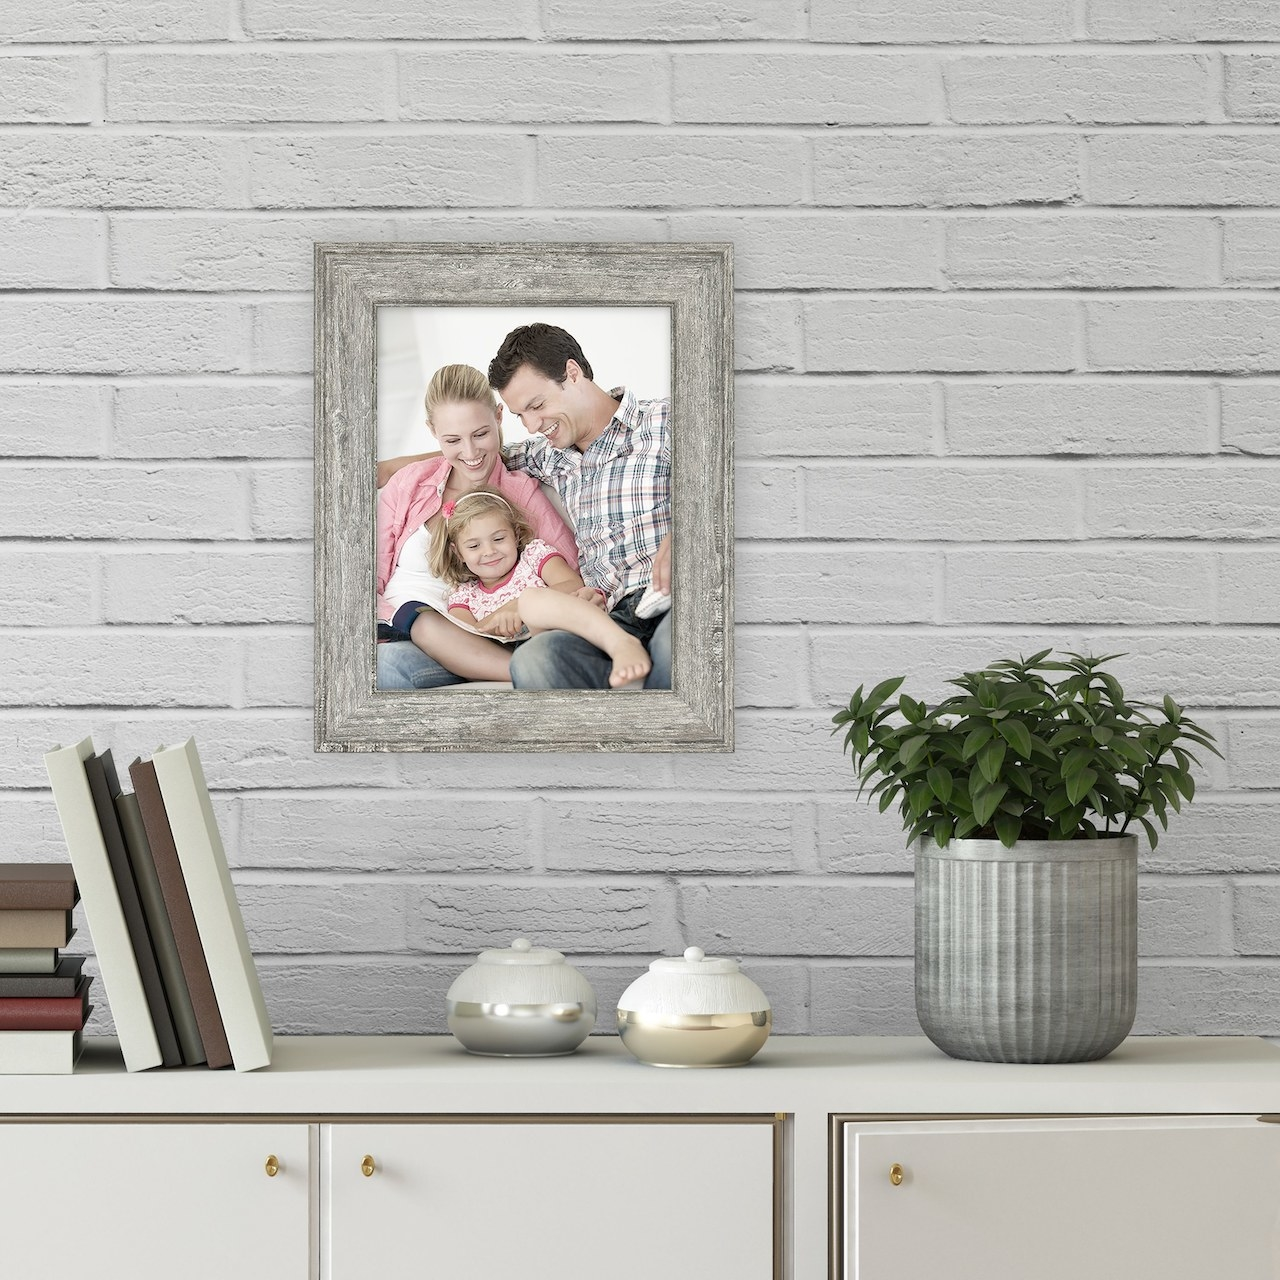 The frame hanging on a wall with a family photo inside